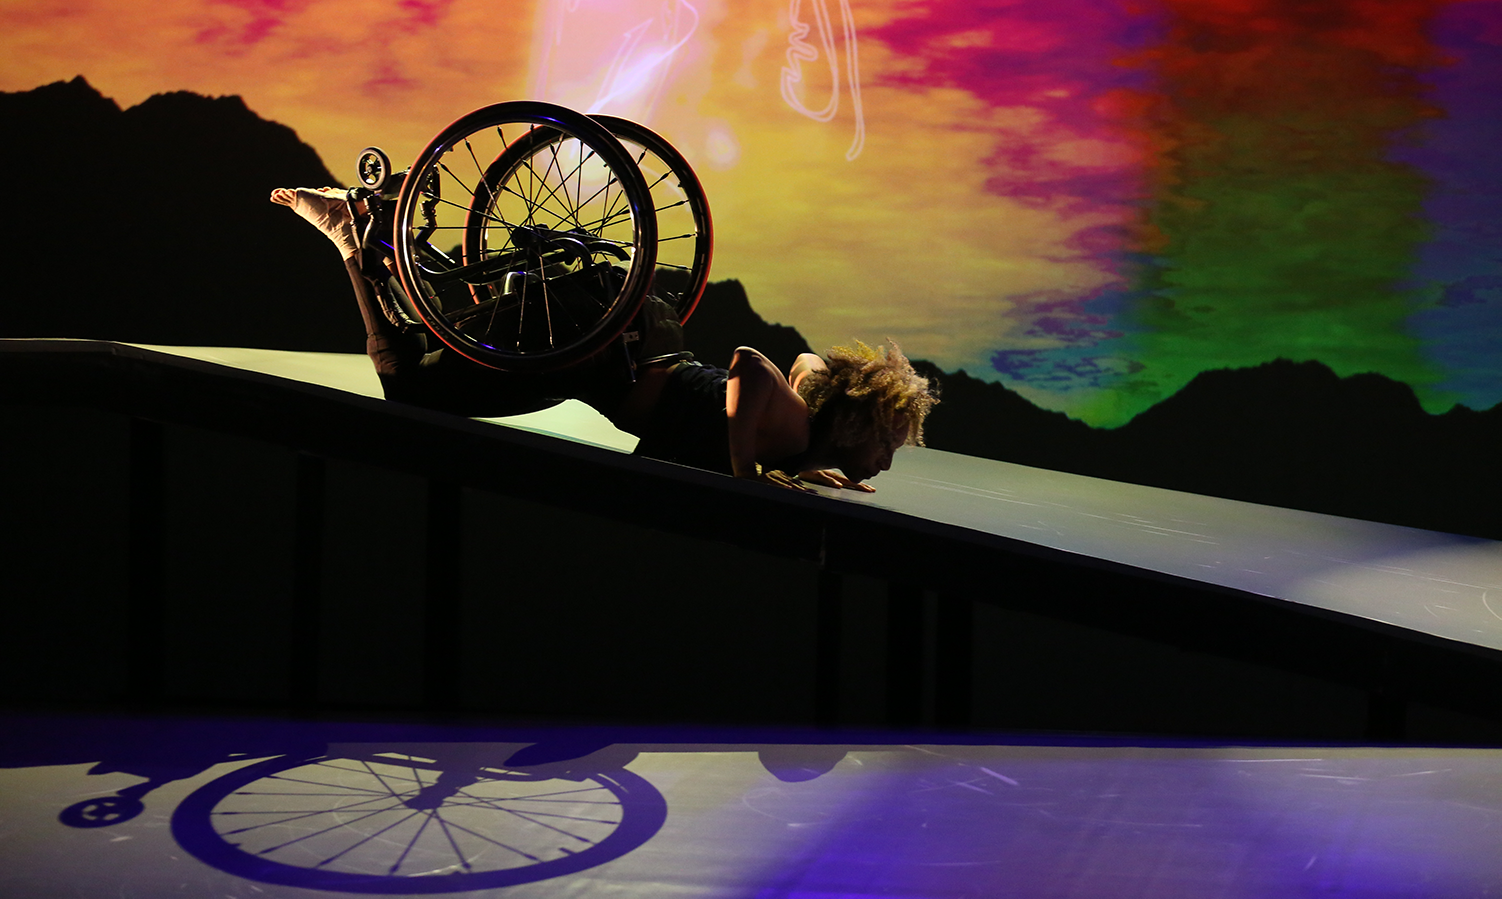 As the sky transitions from gold to amber to red, green and blue, Alice Sheppard, a light-skinned multiracial Black woman, slides in a spider position on her stomach down the shiny ramp. Her bent elbows, her wheelchair and the bottoms of her bare feet point upward as she stares down the Ramp. The shadow of her wheelchair is visible beneath her short curly hair glows in the light.